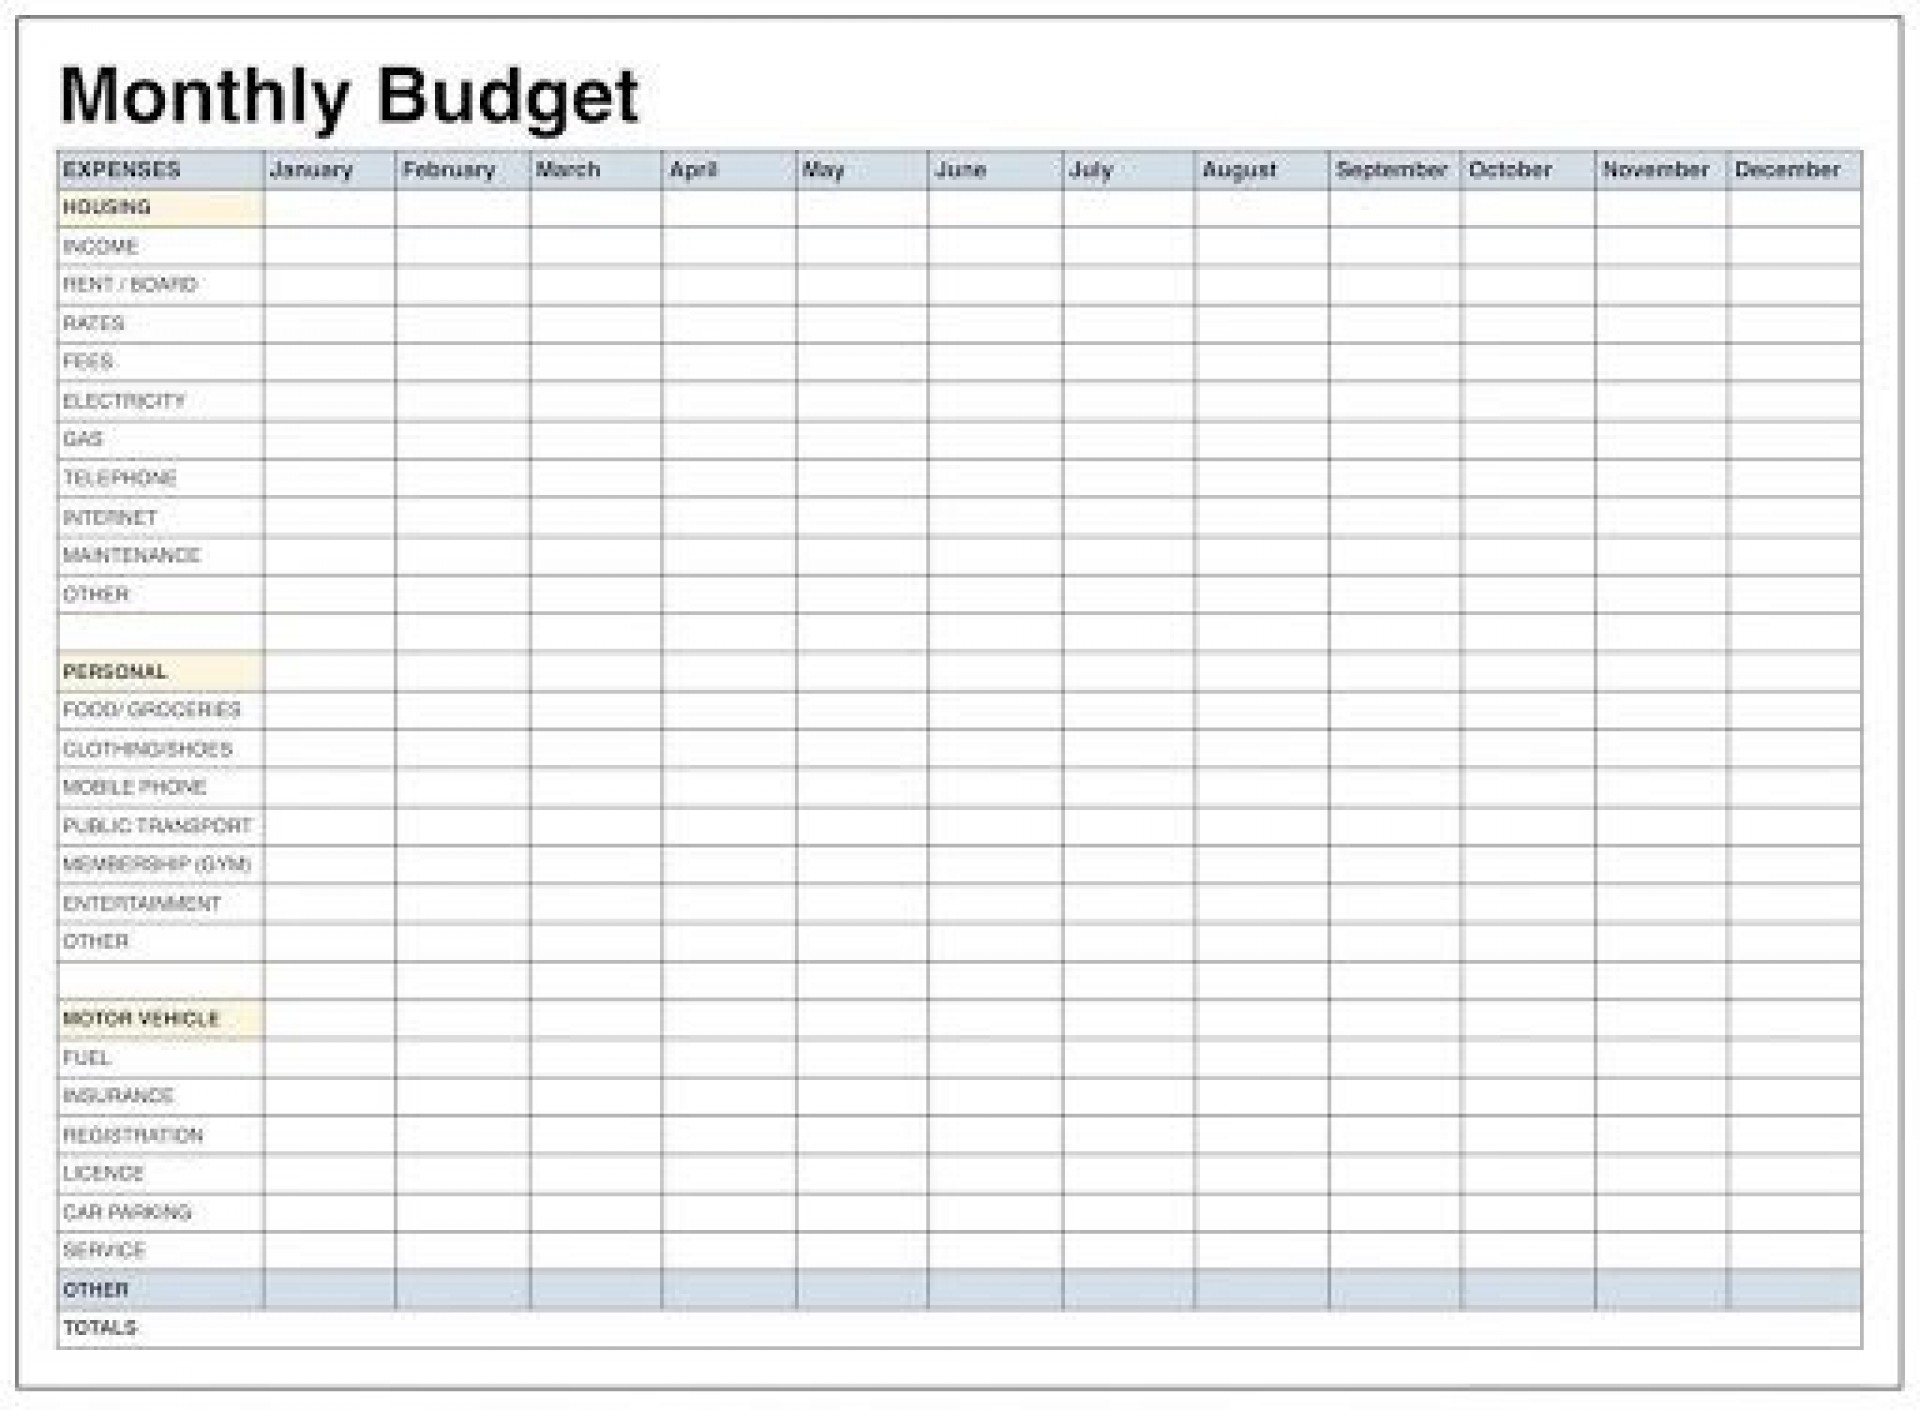 009 Archaicawful Blank Monthly Budget Worksheet High Definition  Worksheets Printable Free Spreadsheet1920